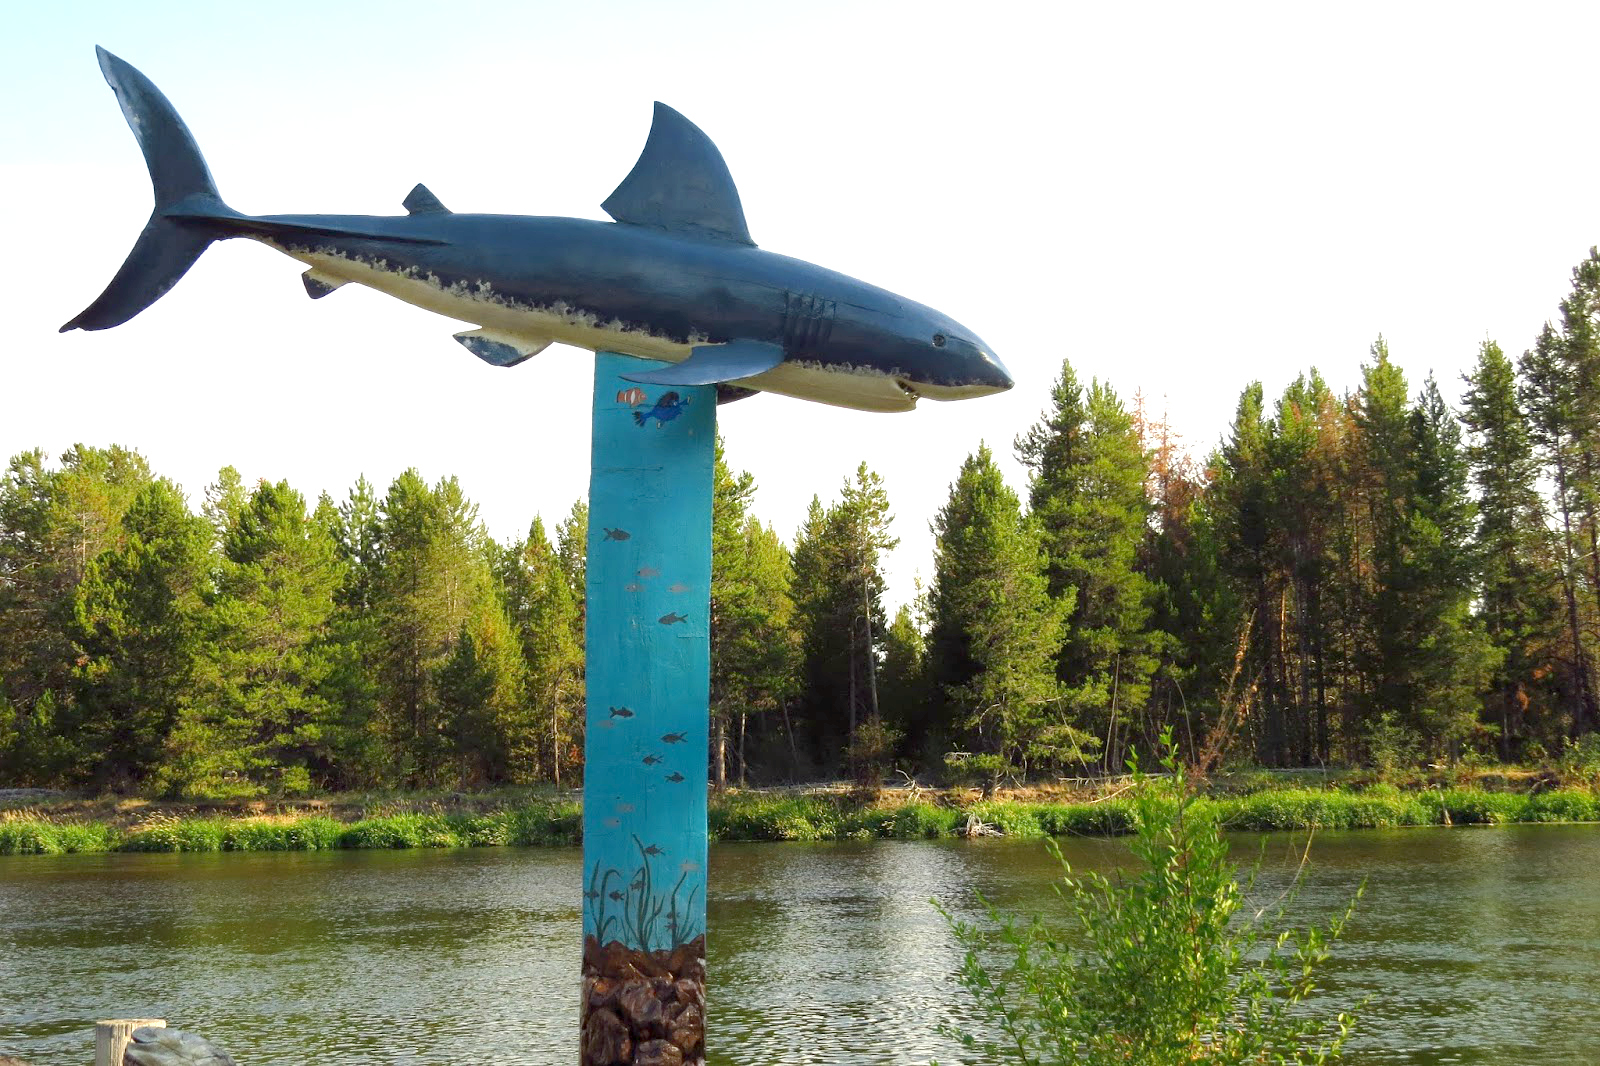 Arrowhead RV Park Totem Pole